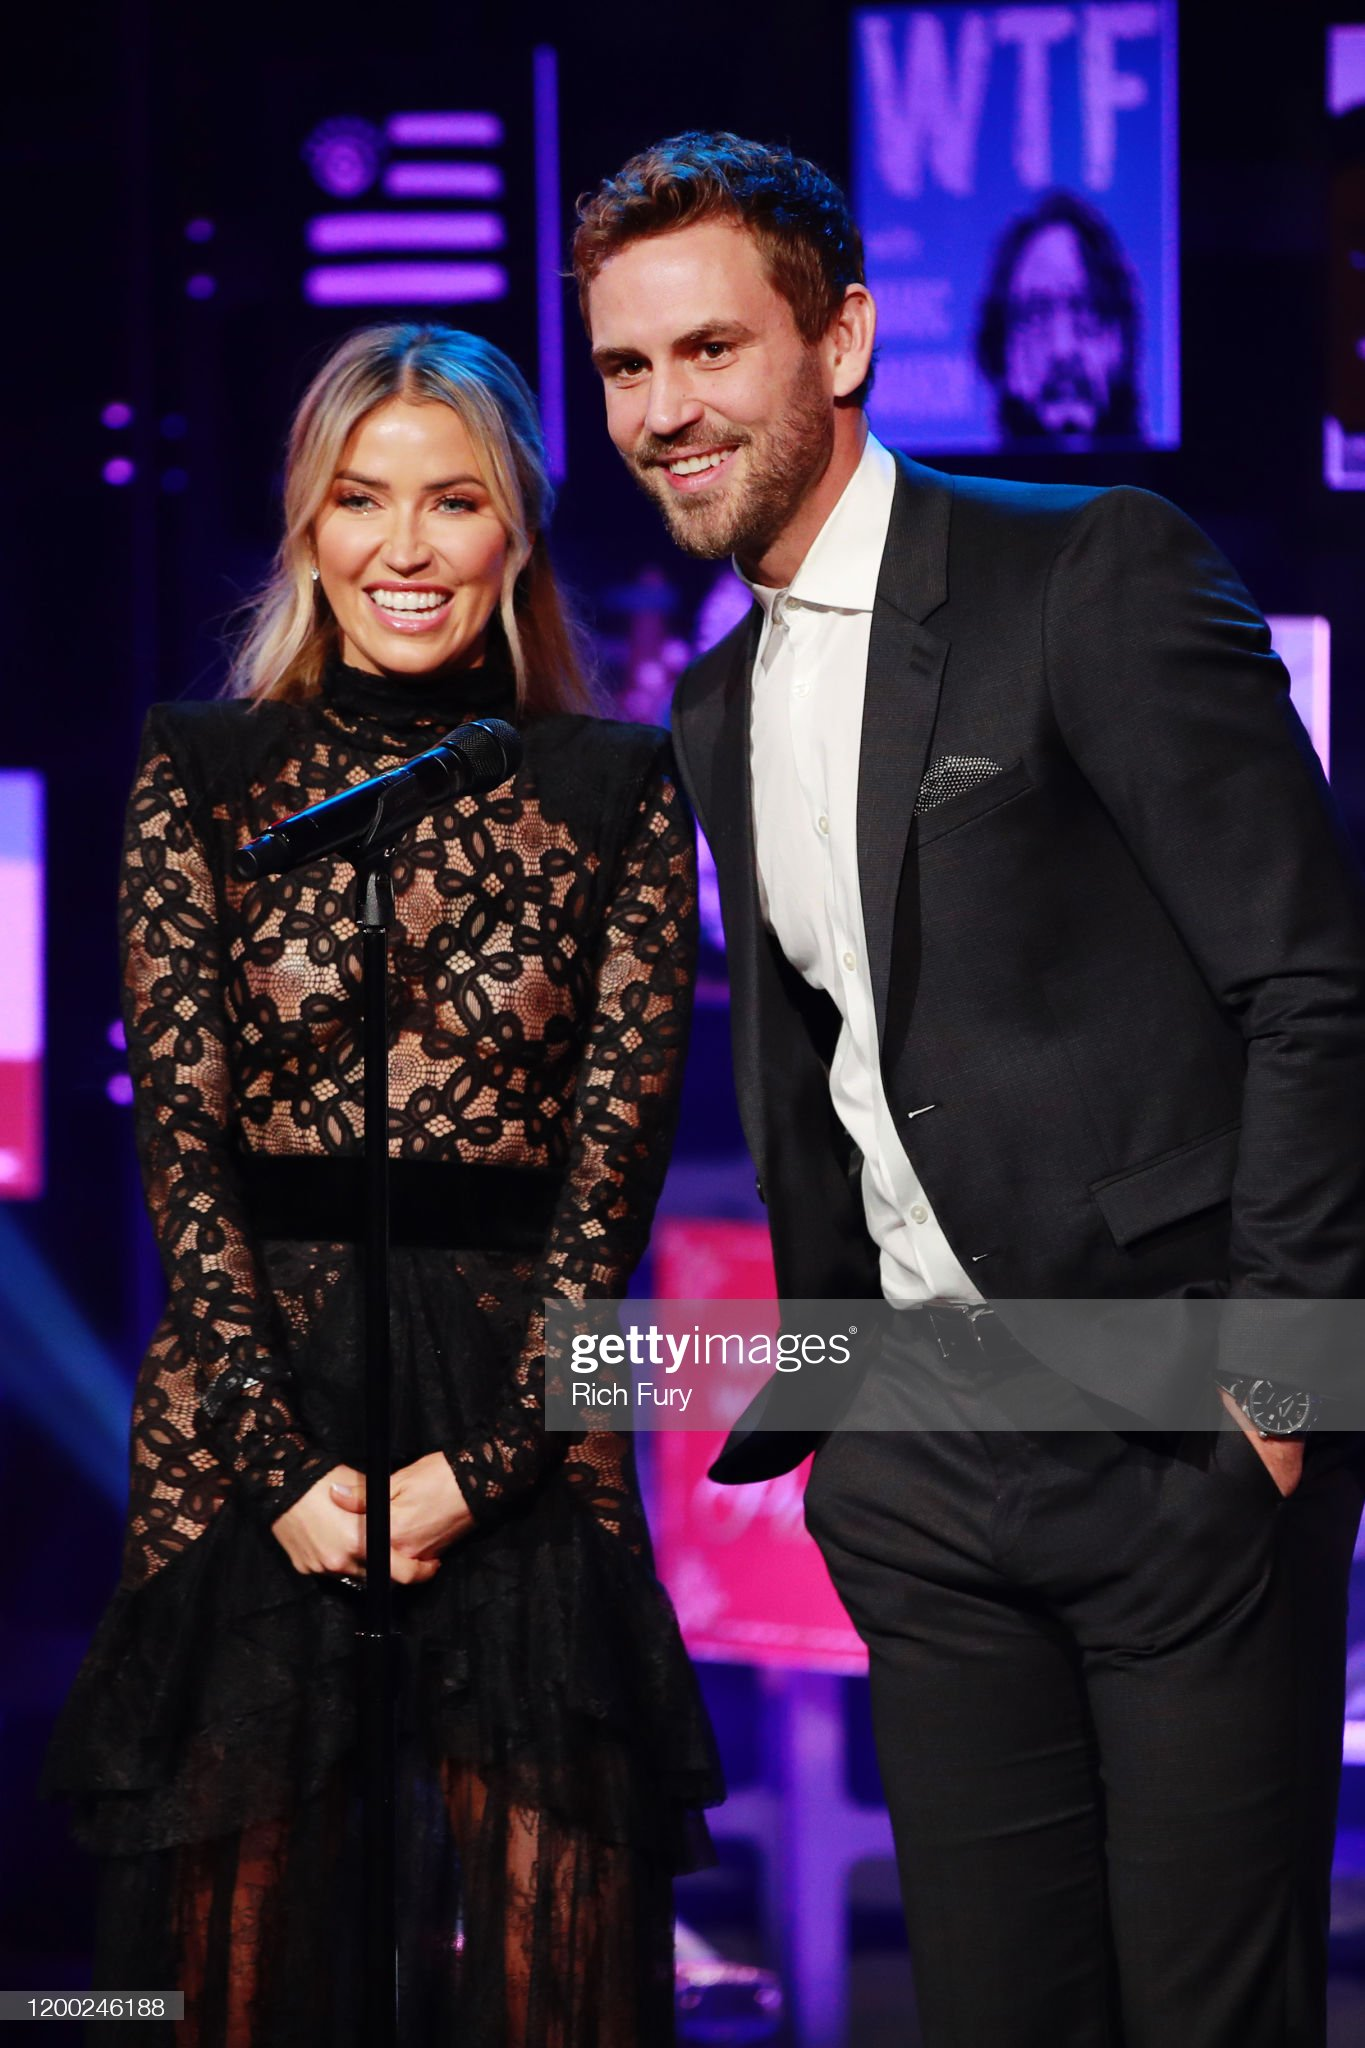 Kaitlyn Bristowe - Jason Tartick - FAN Forum - Discussion  - Page 51 Kaitlyn-bristowe-and-nick-viall-speak-onstage-at-the-2020-iheartradio-picture-id1200246188?s=2048x2048